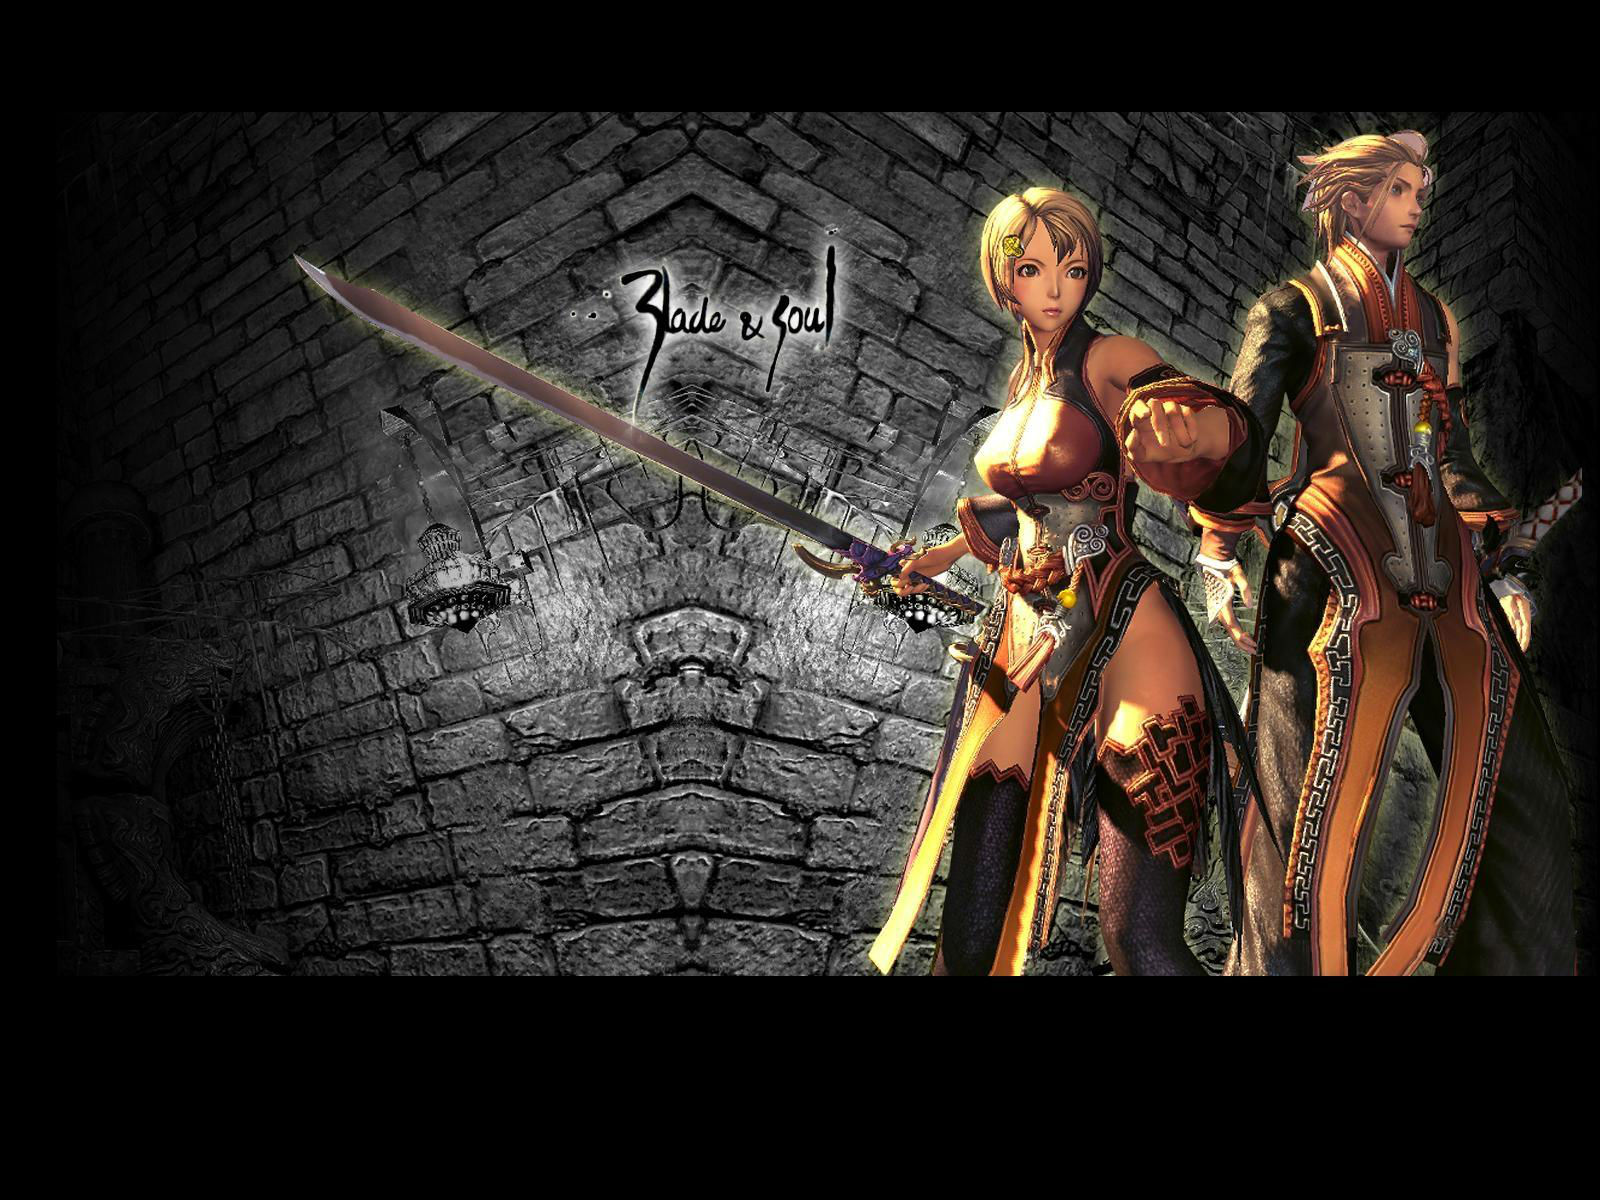 Blade And Soul Wallpaper: Blade & Soul Wallpaper And Background Image